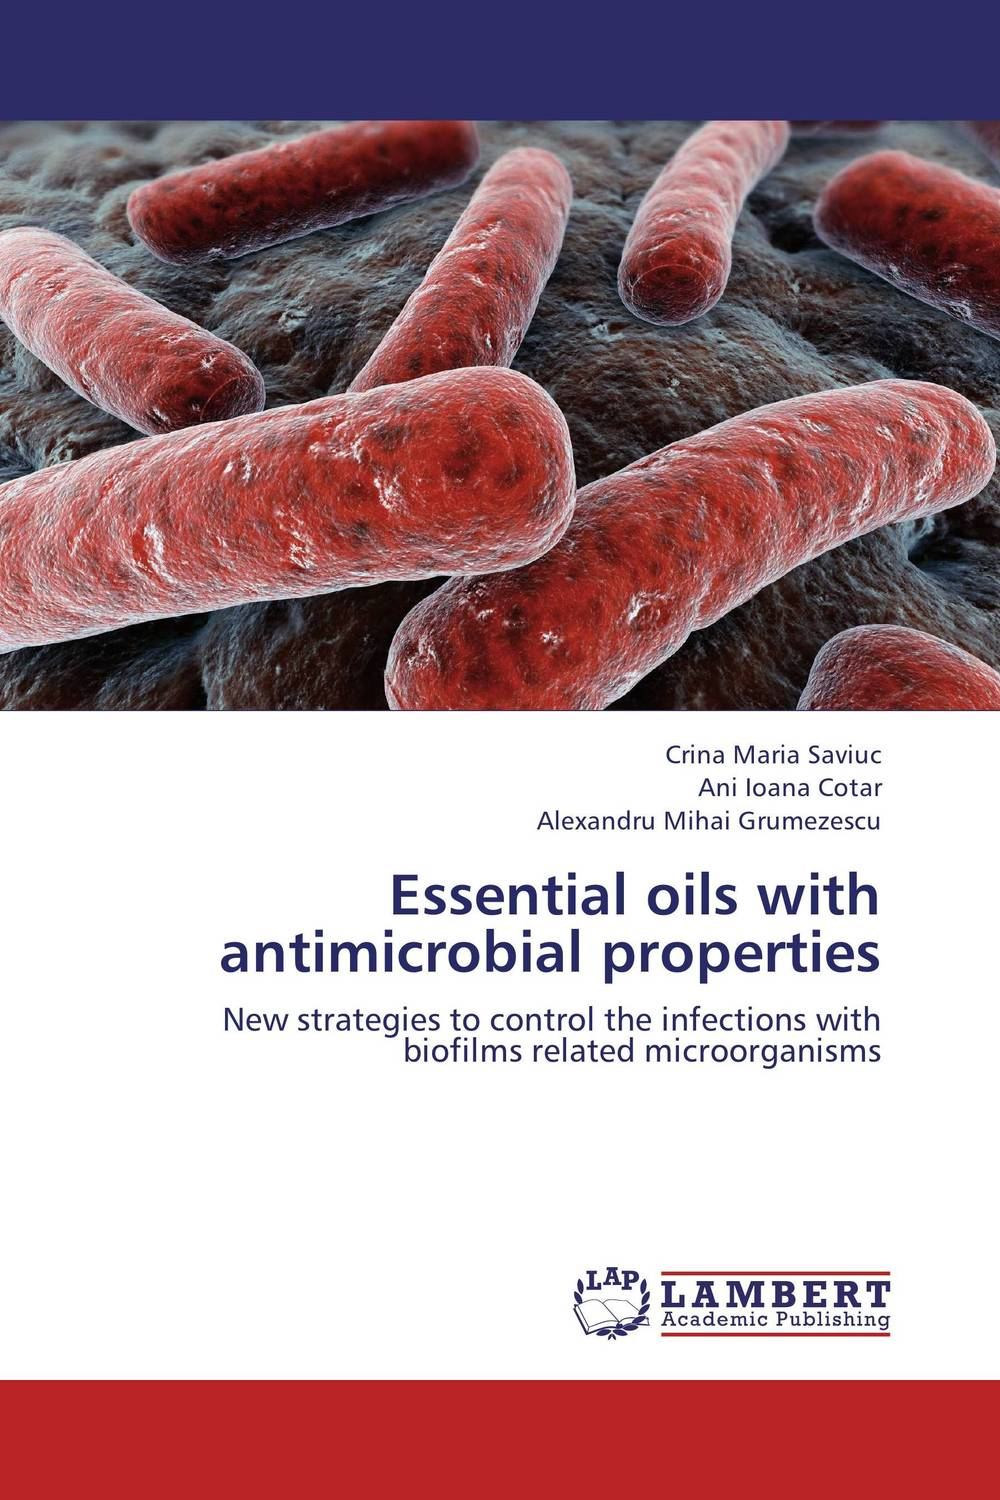 Essential oils with antimicrobial properties antimicrobial activity of brownlowia tersa